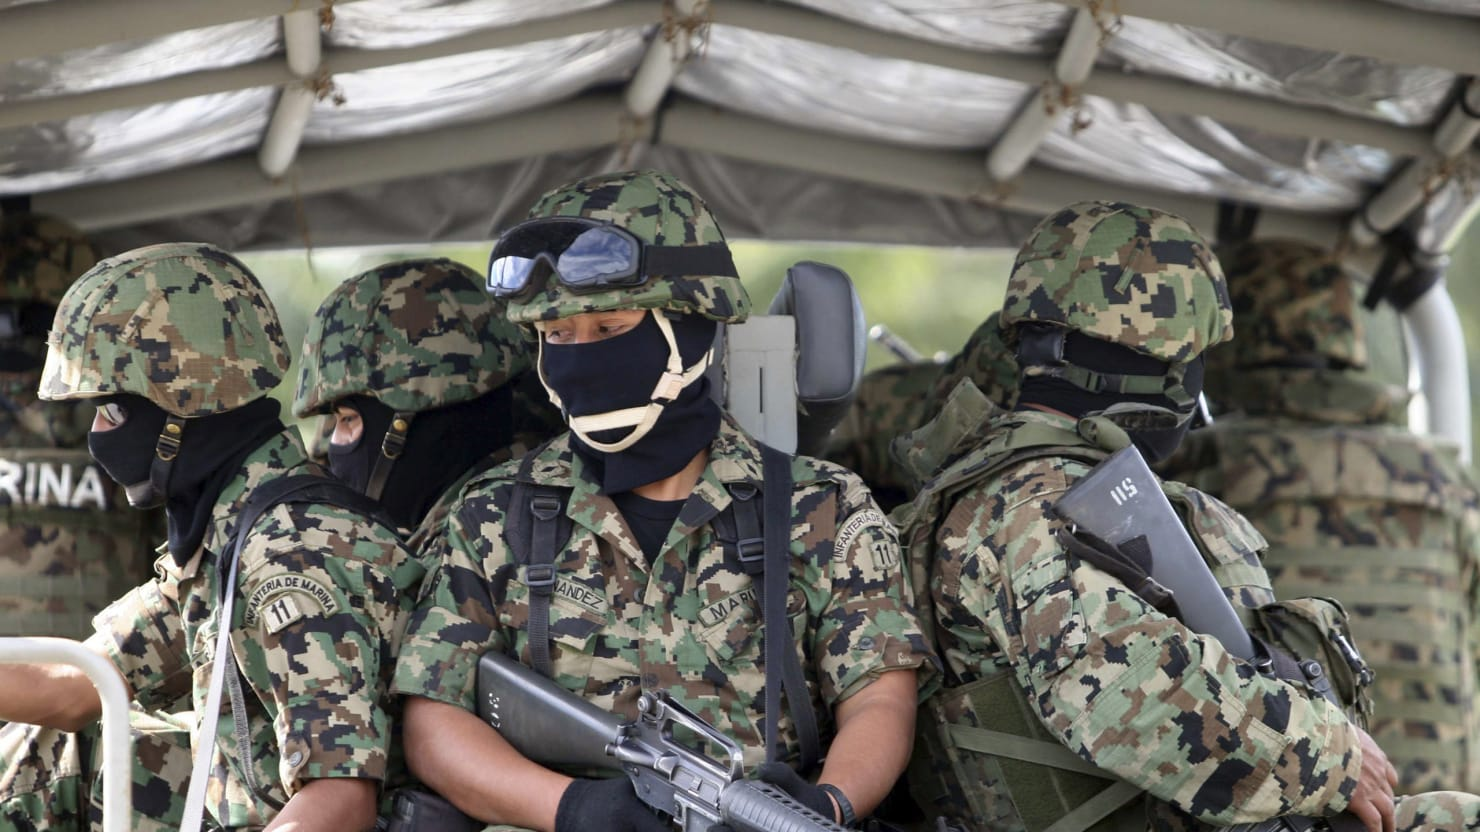 For Mexico's Marines, An Epic Cartel Bust With Another Tragedy in Mind